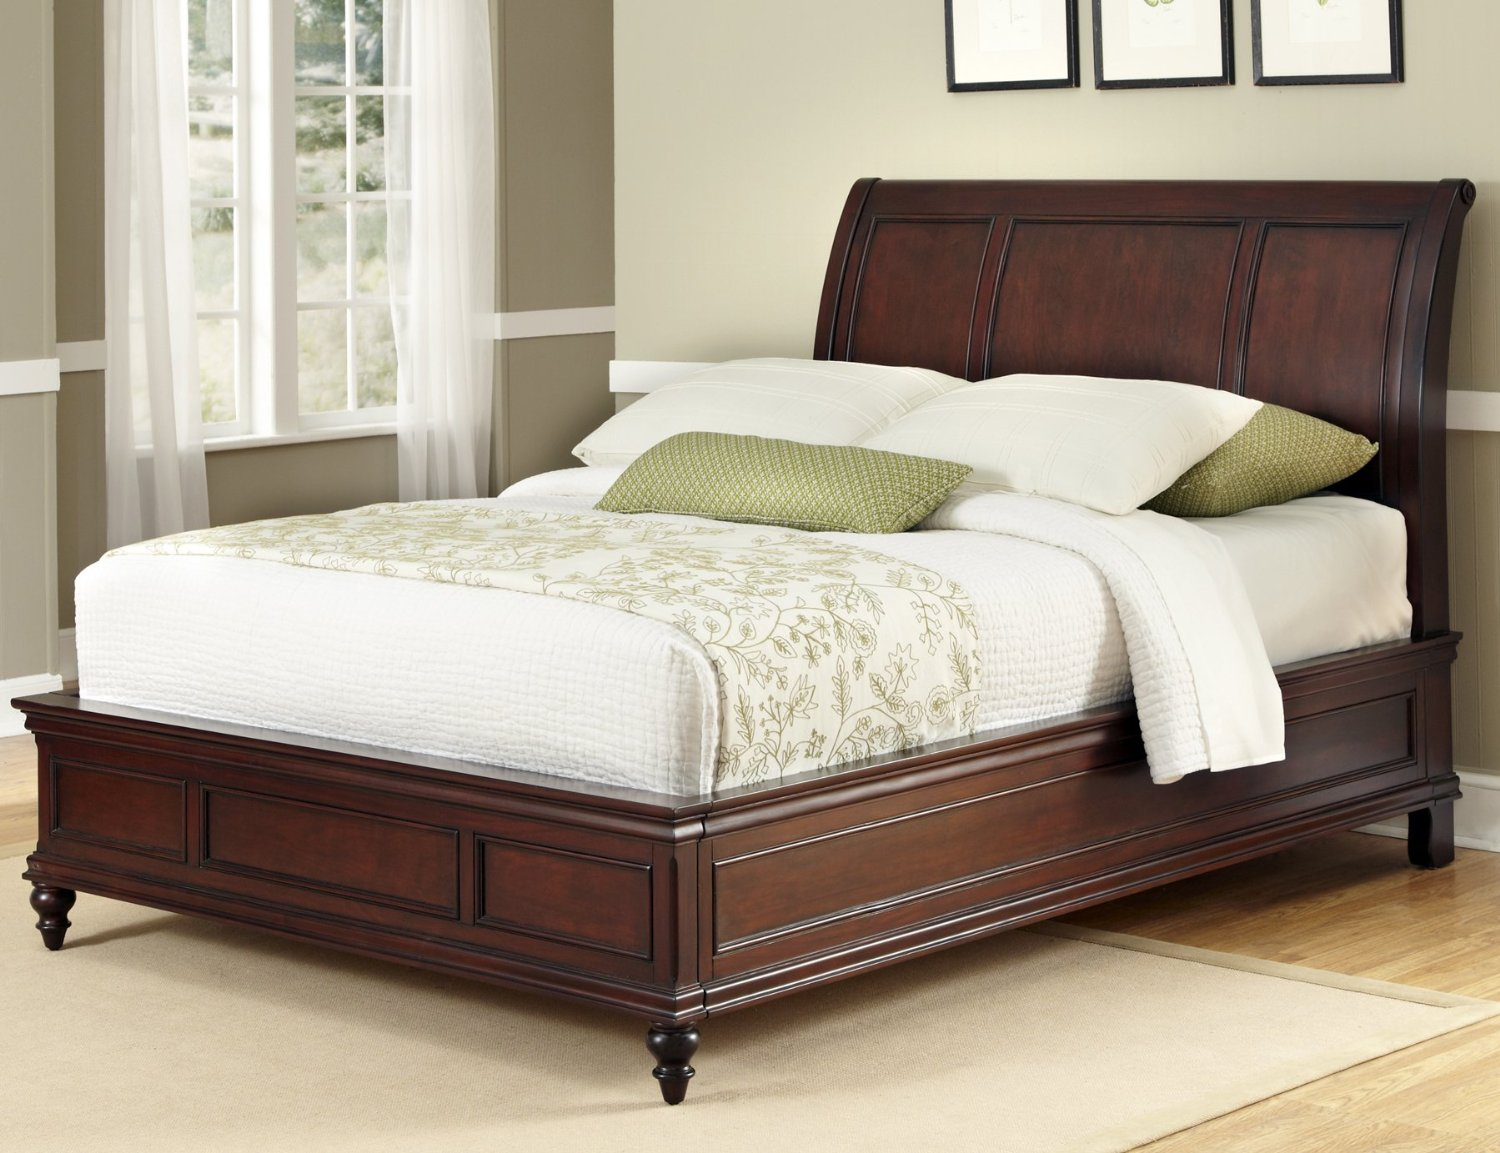 Beautiful Feng Shui Bed With Solid Headboard Support Click To Preview